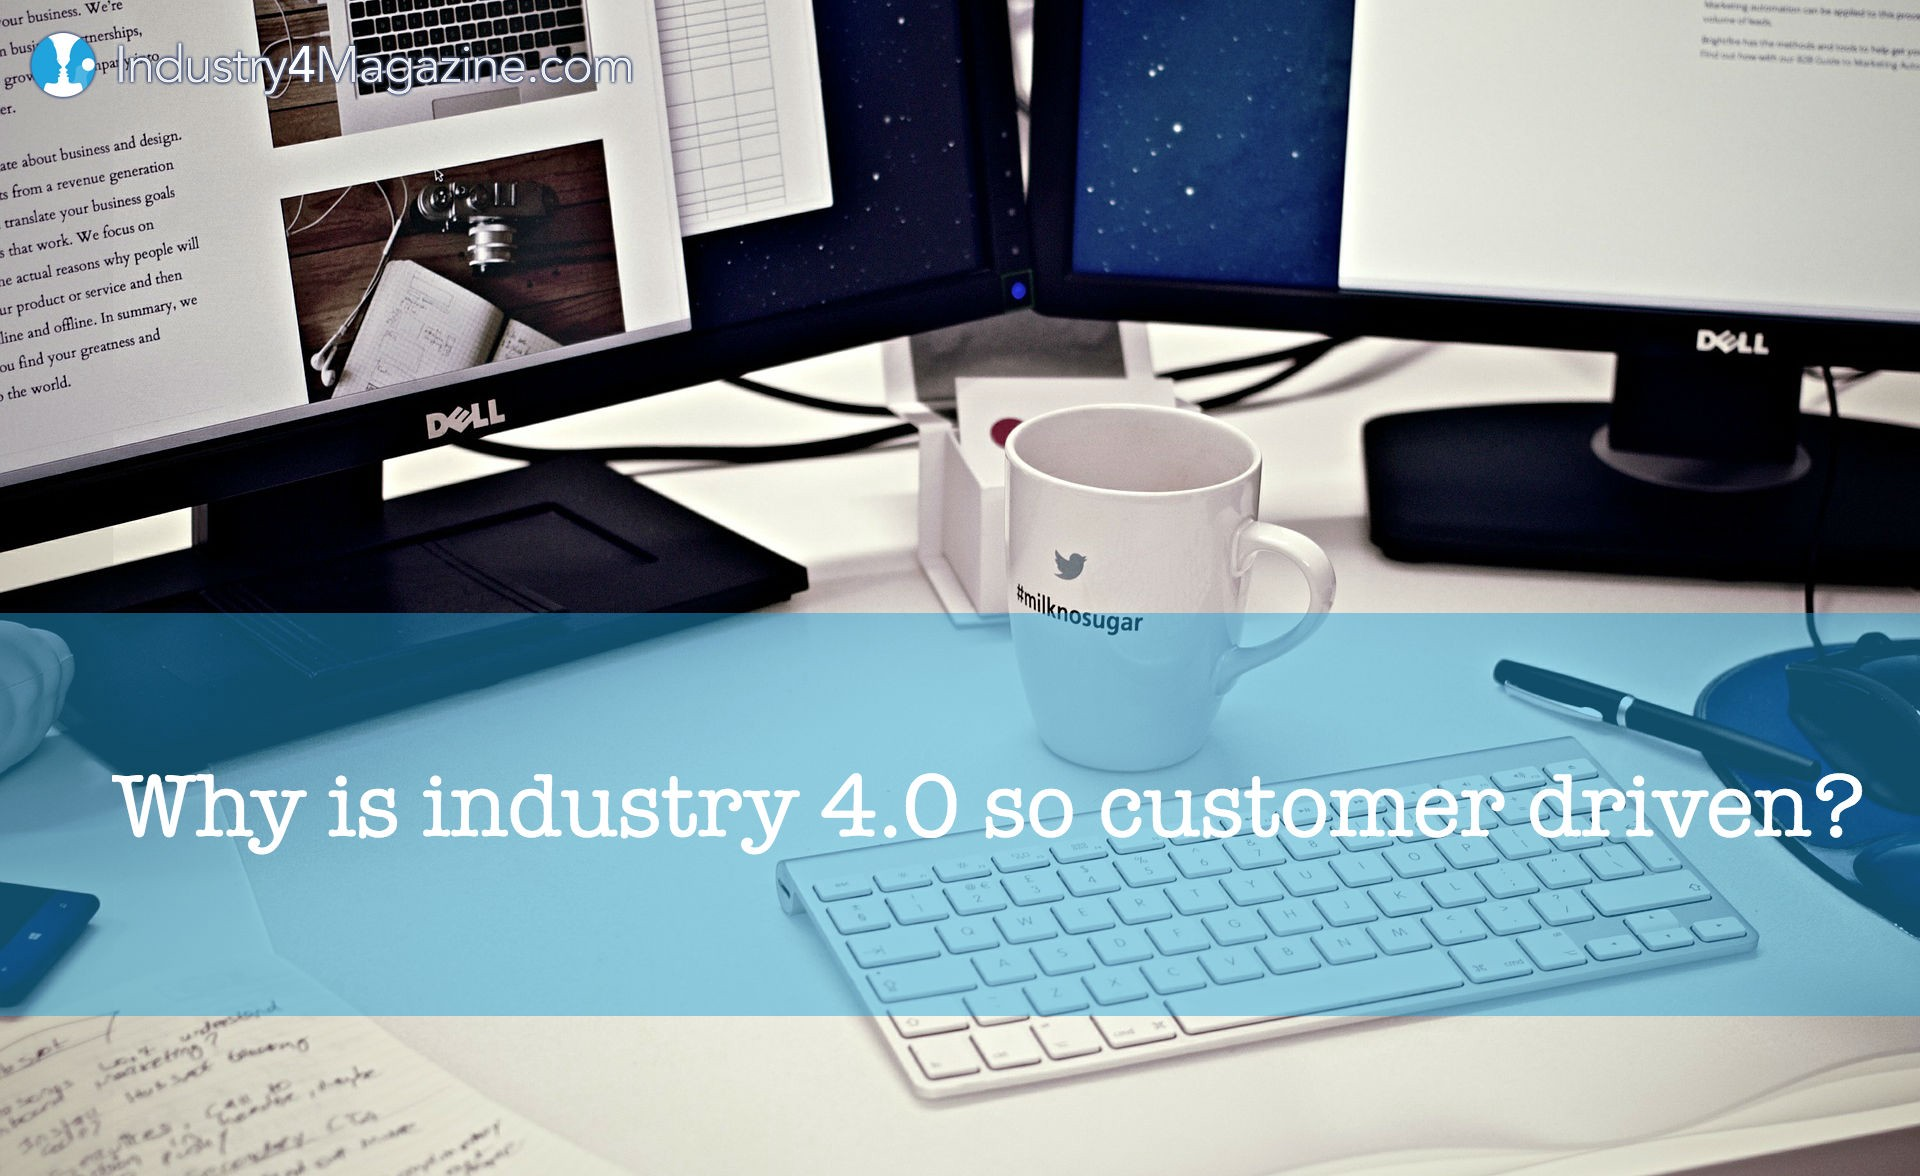 Why is Industry 4.0 so customer driven?